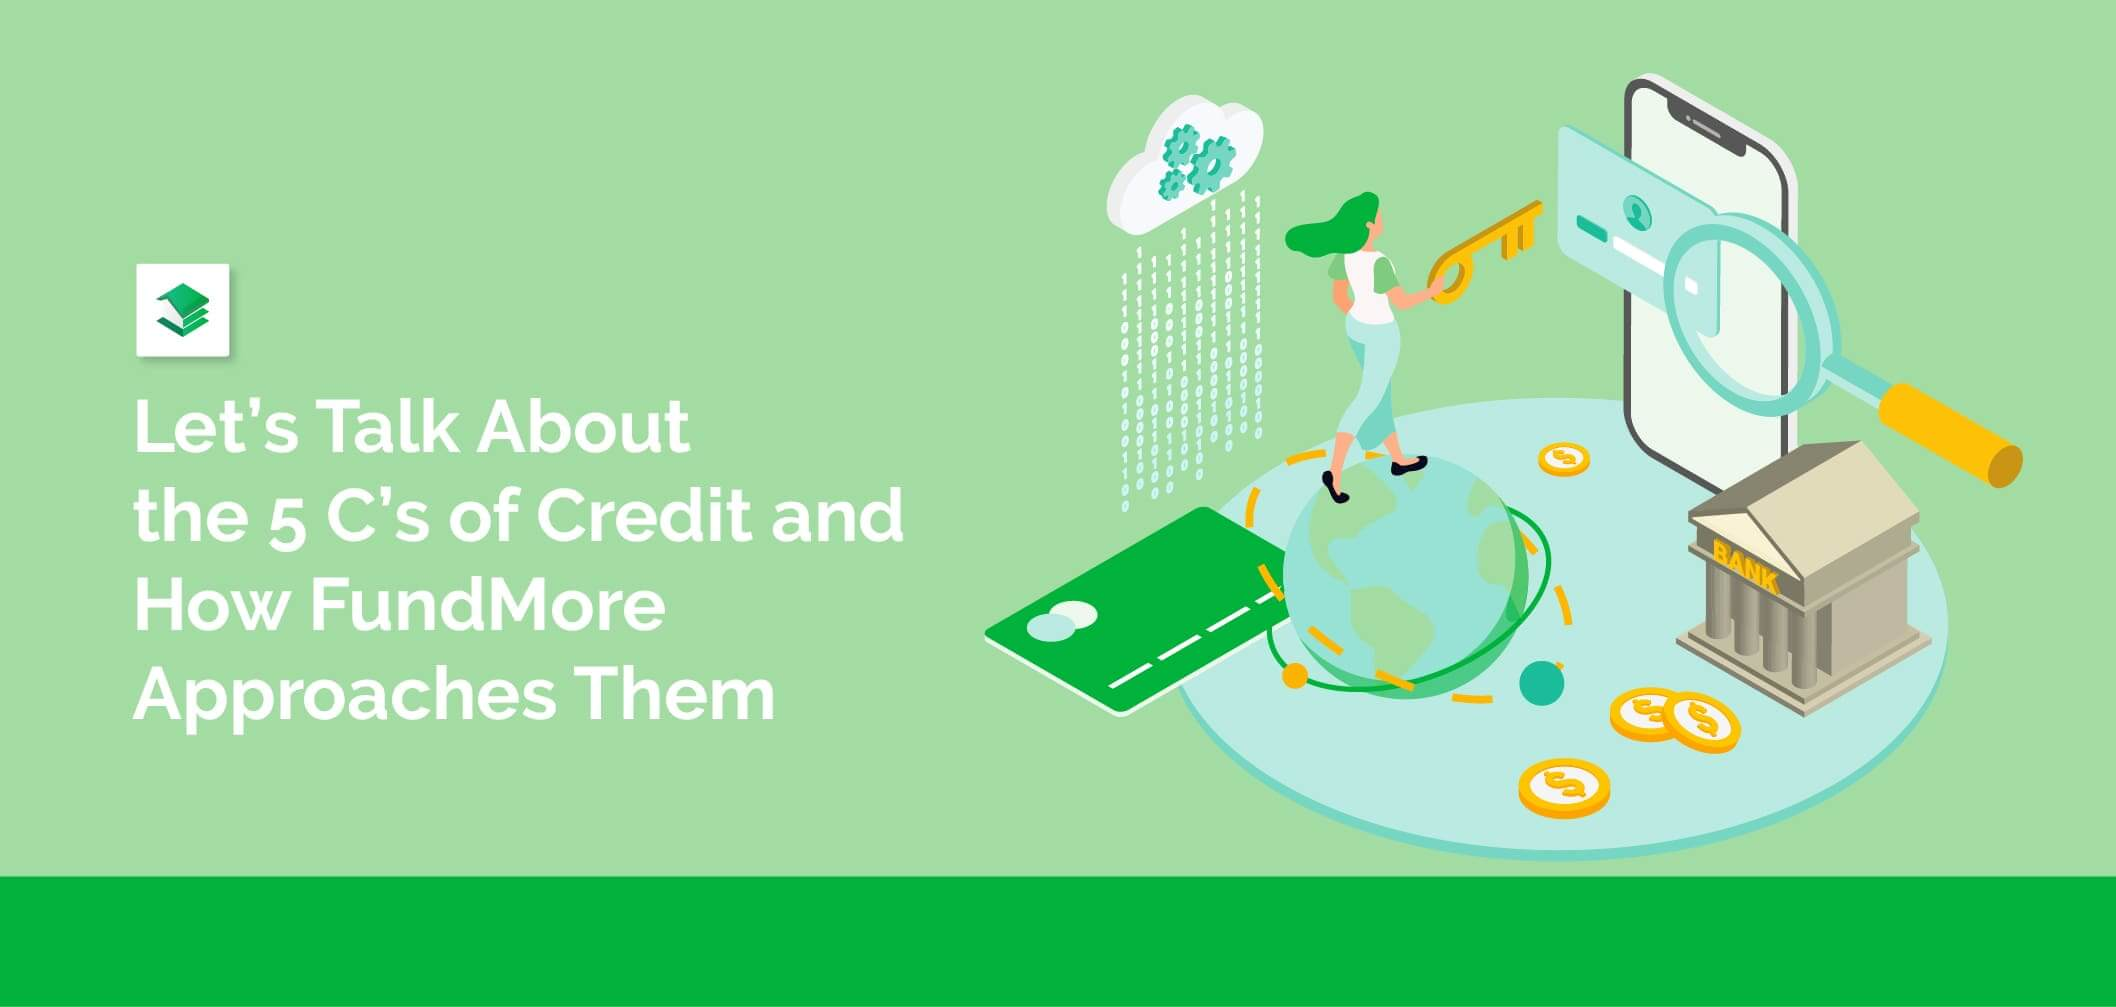 lets-talk-about-the-5-cs-of-credit-and-how-fundmore-approaches-them